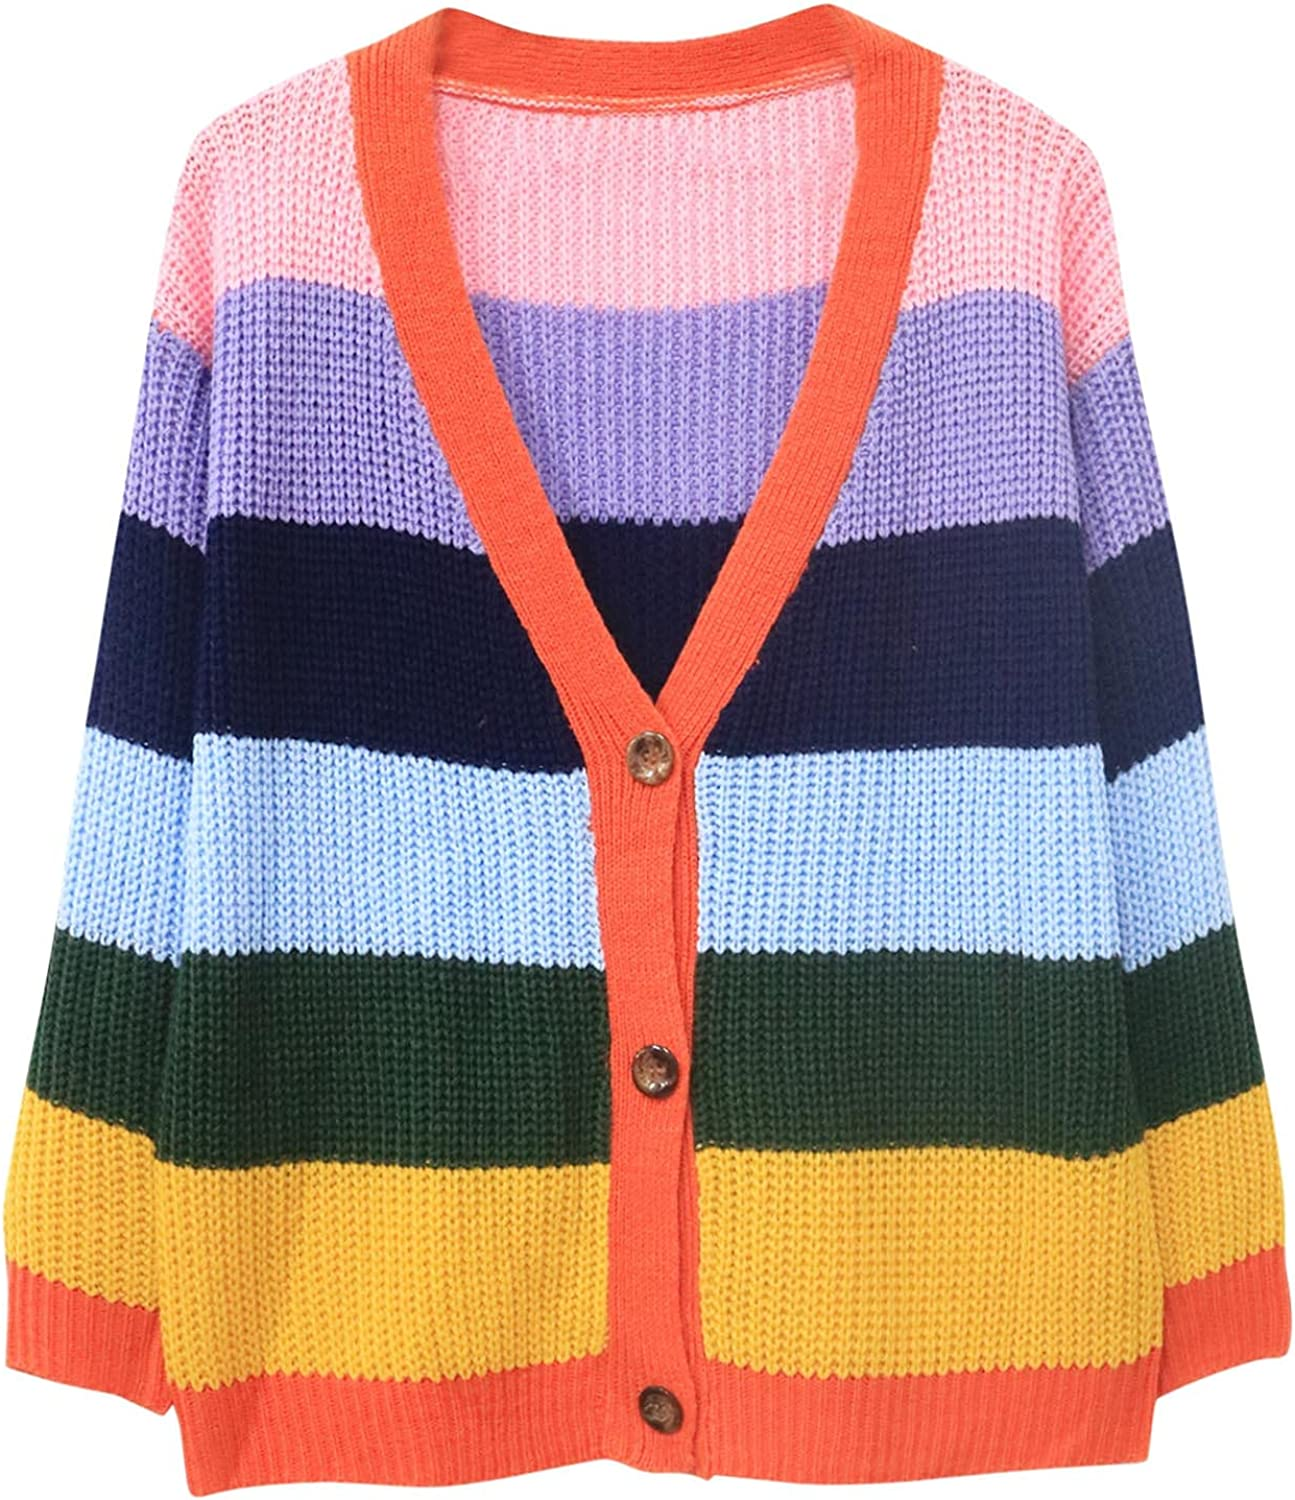 Women's Button Down Long Sleeve Cardigan Rainbow Striped Knitted Crop Loose Sweater Top